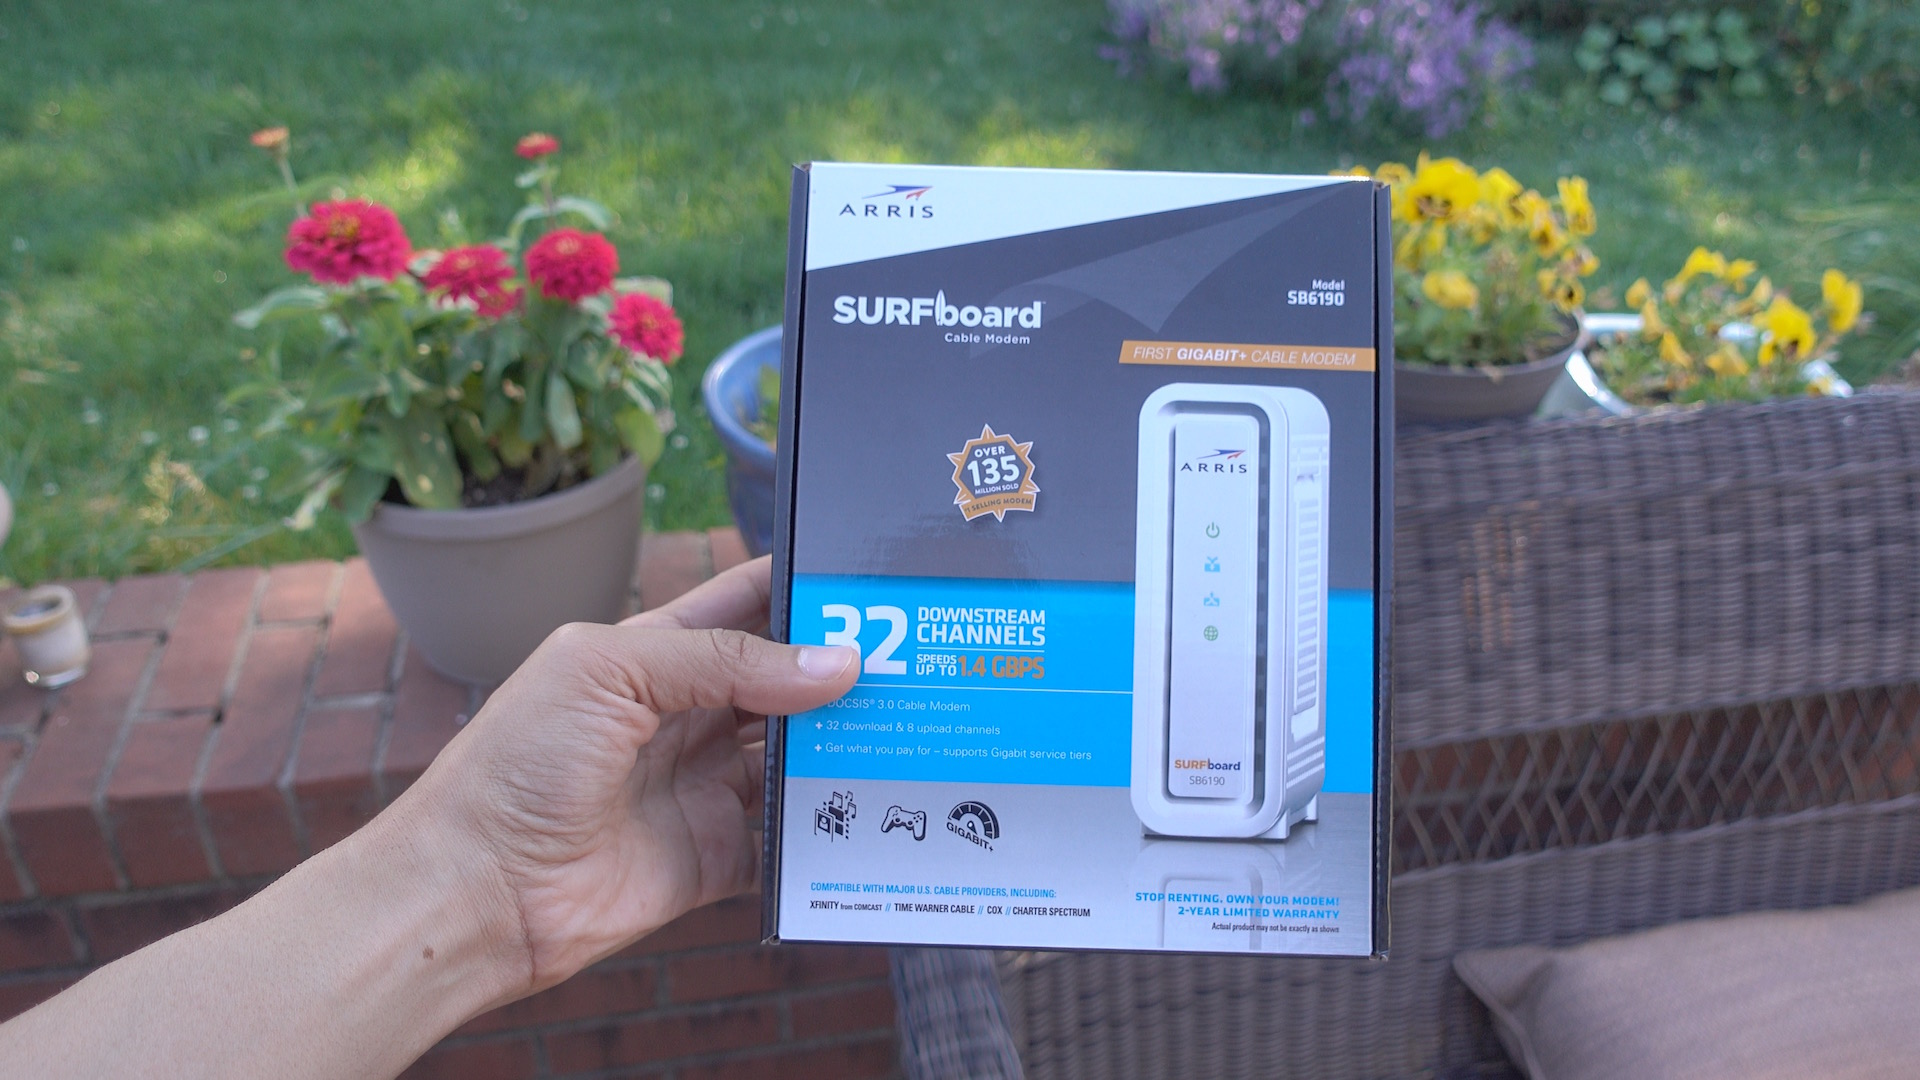 Purchasing your own cable modem may save money and allow for